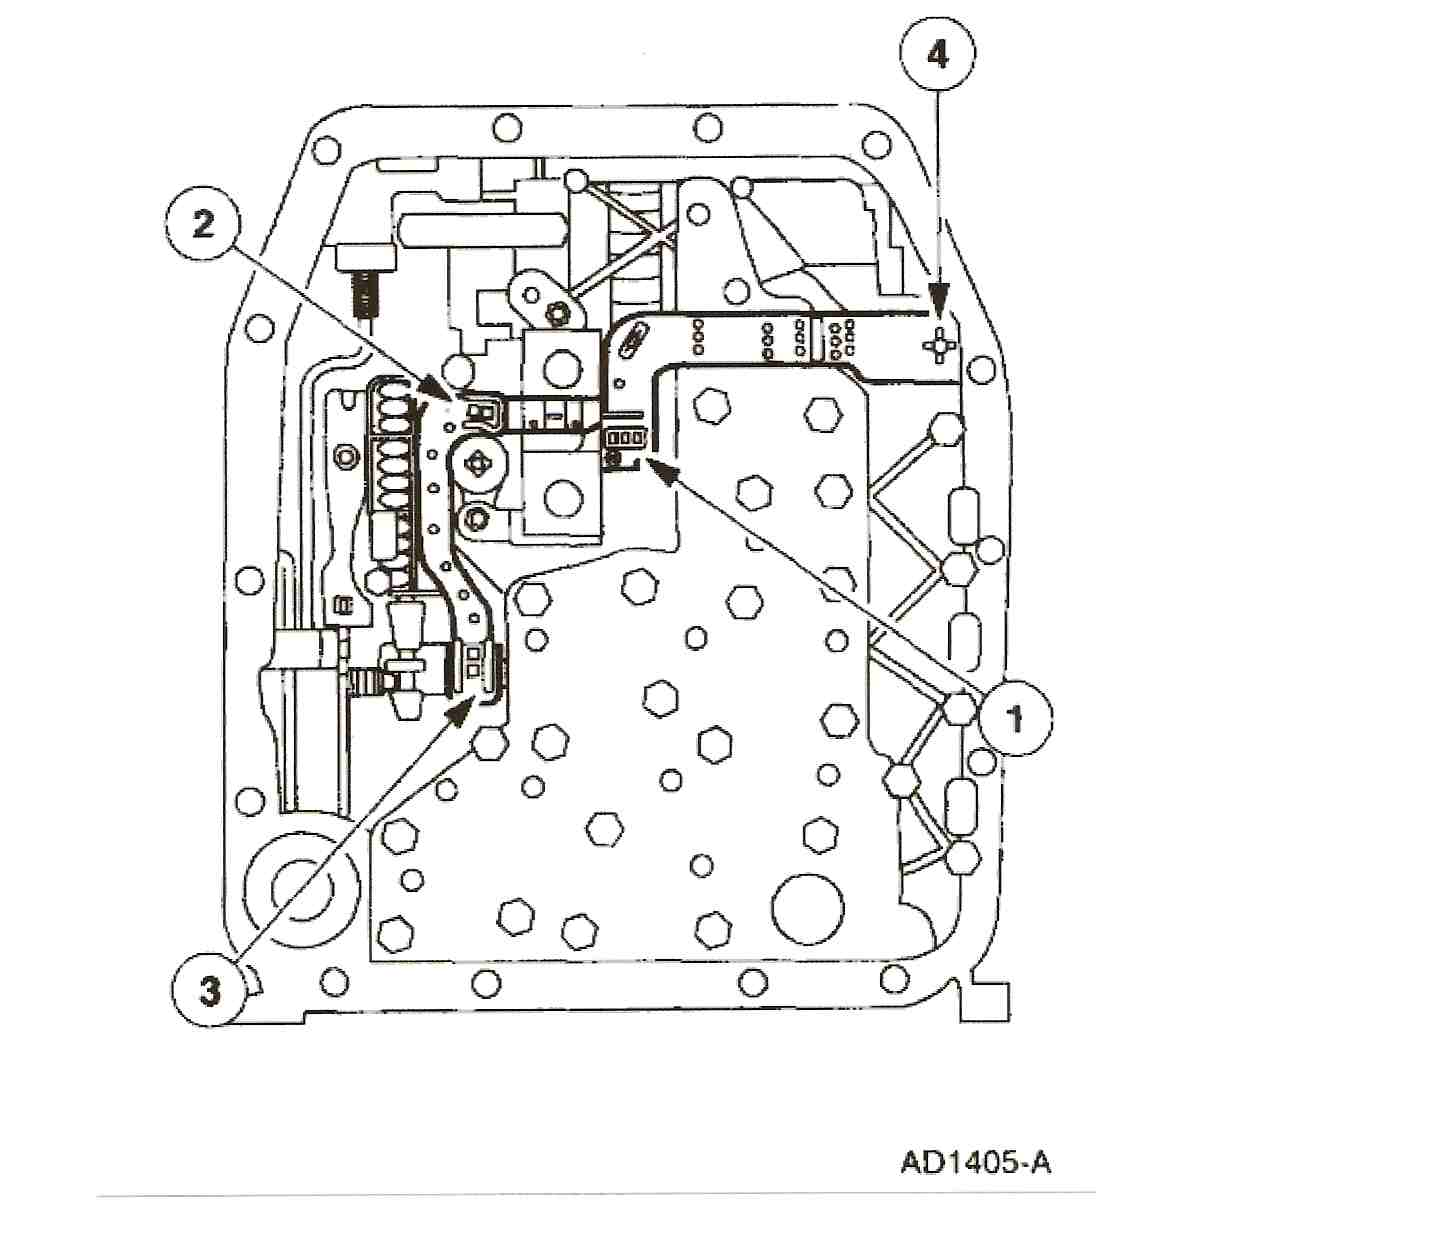 2011 04 01 archive as well Wiring Diagram 1973 Fiat Italian also Fiat Uno Gt Wiring Diagram 26 as well 66 Mustang Dash Wiring Diagram together with Fiat 128 Wiring Schematic. on free automotive wiring diagrams 1973 fiat